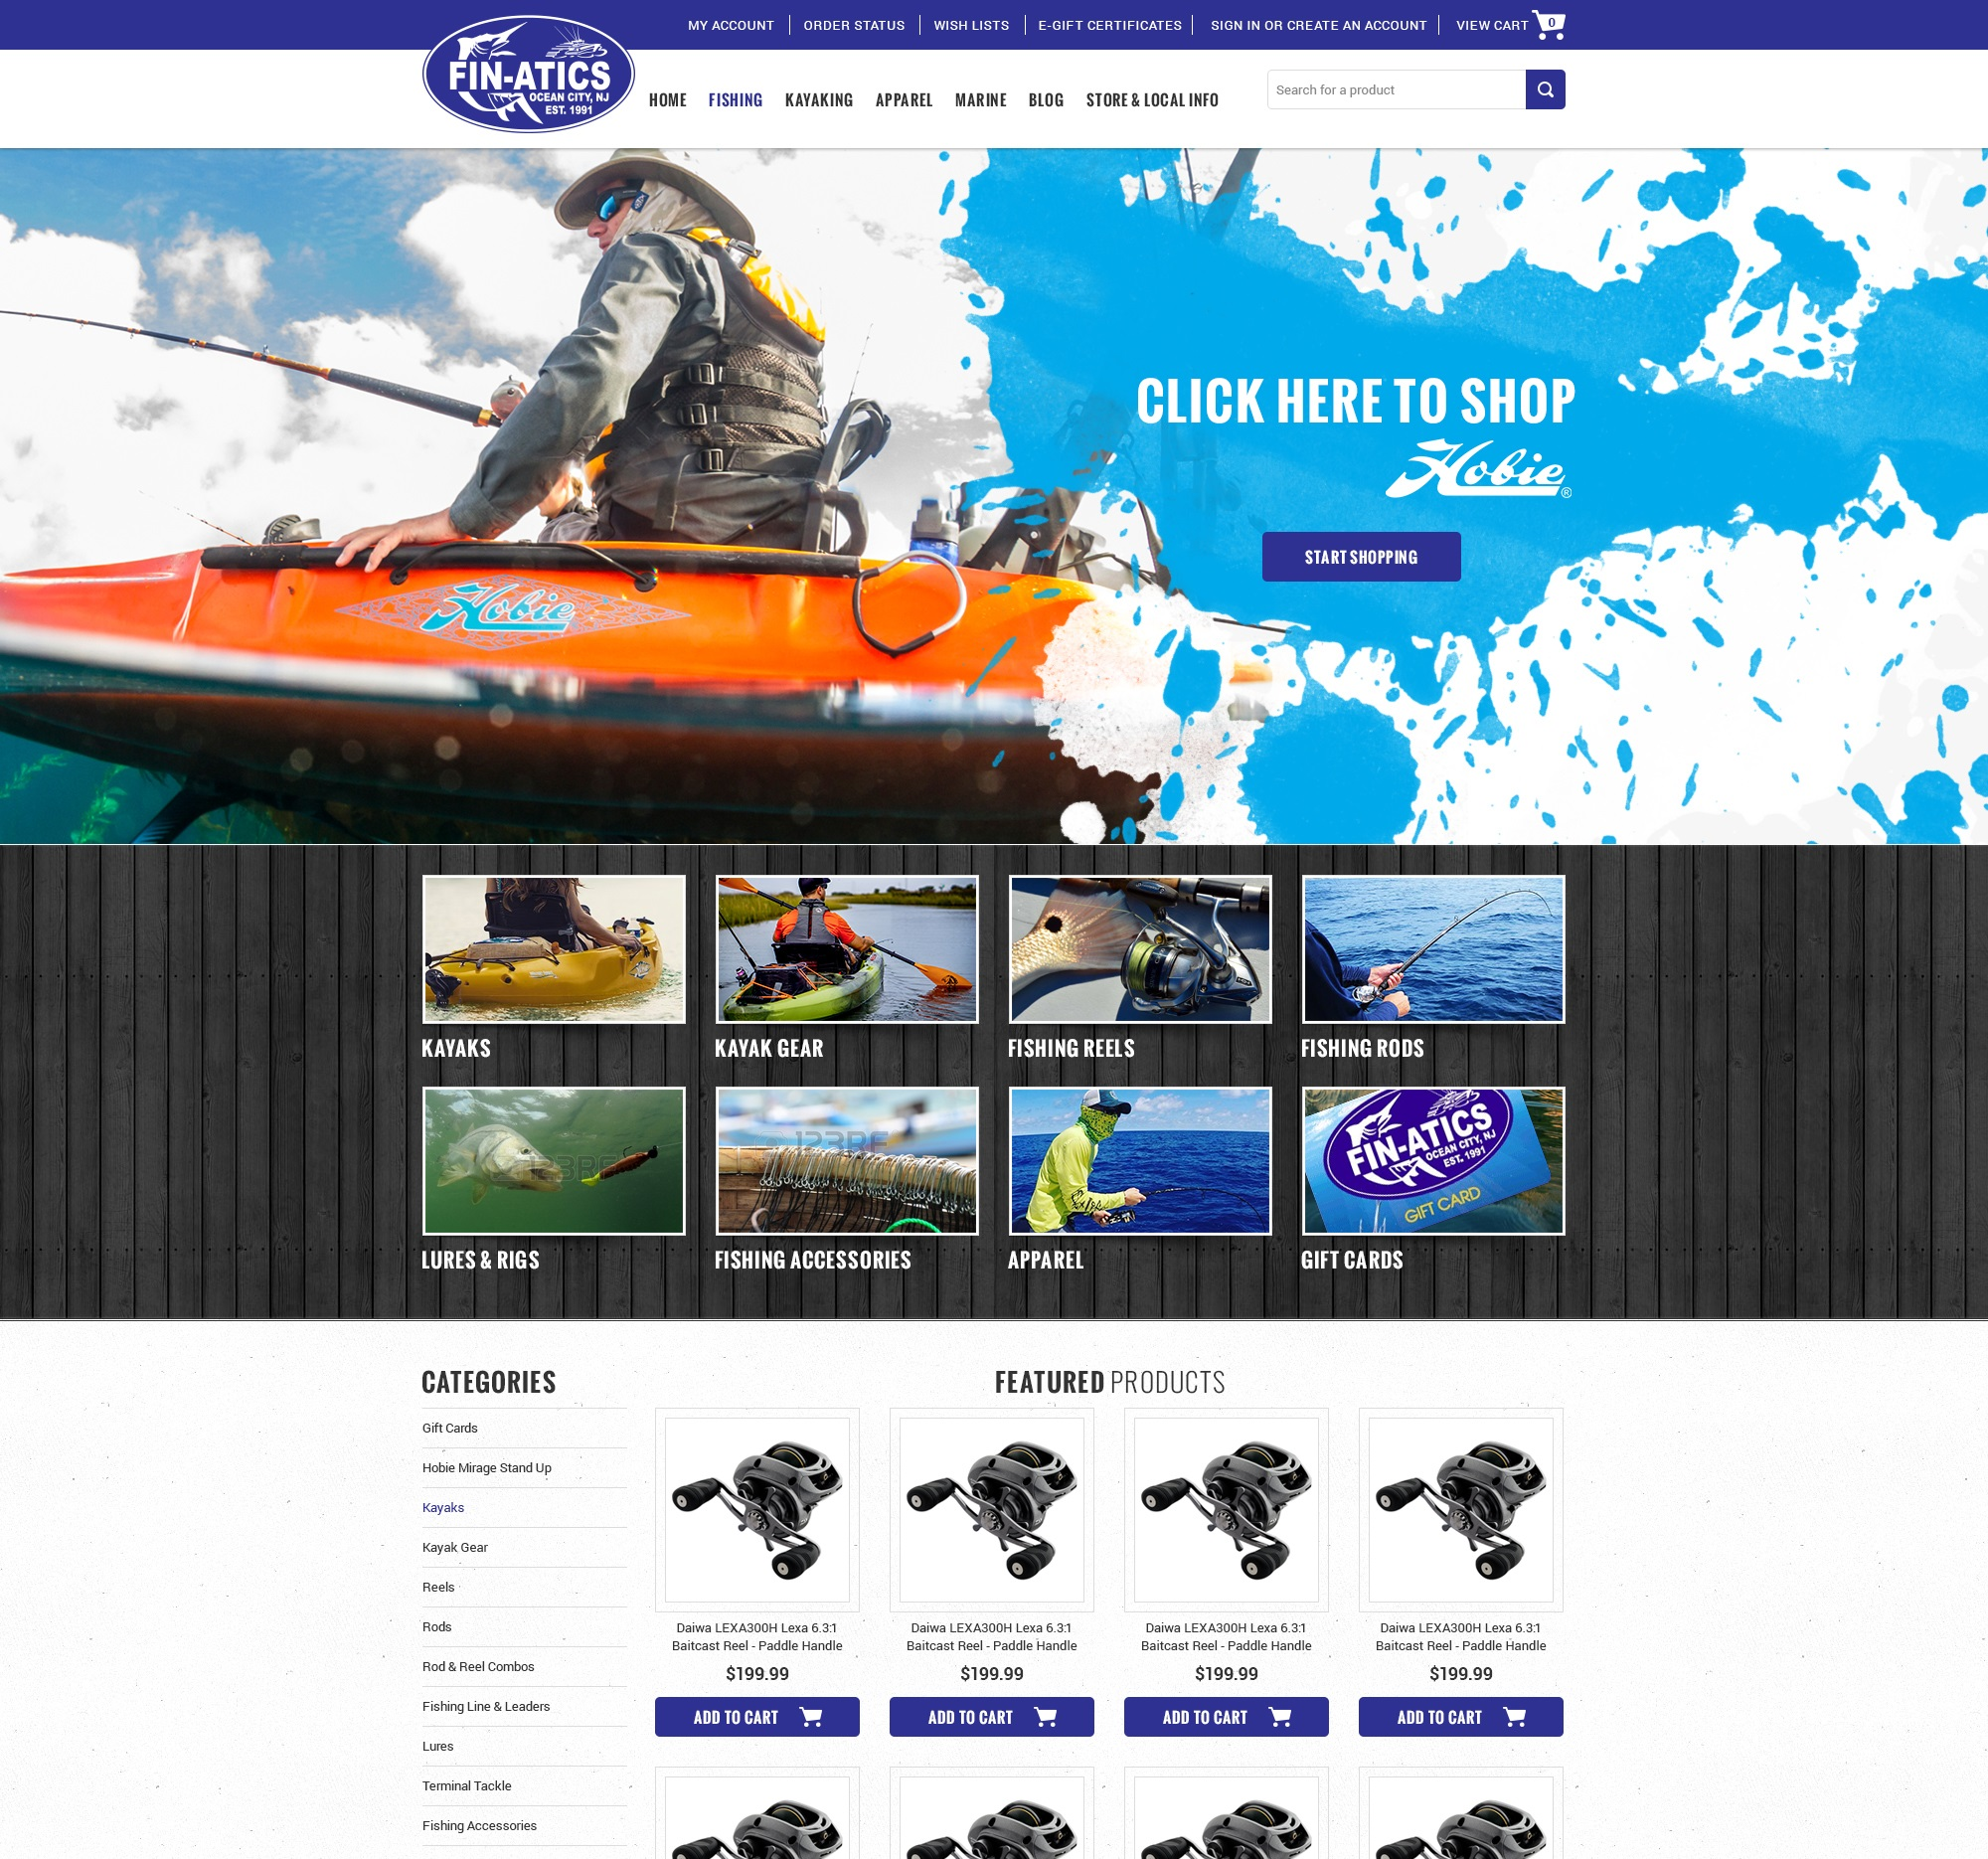 Design Stores Online: EBay Templates, EBay Store Design, Shopify Themes